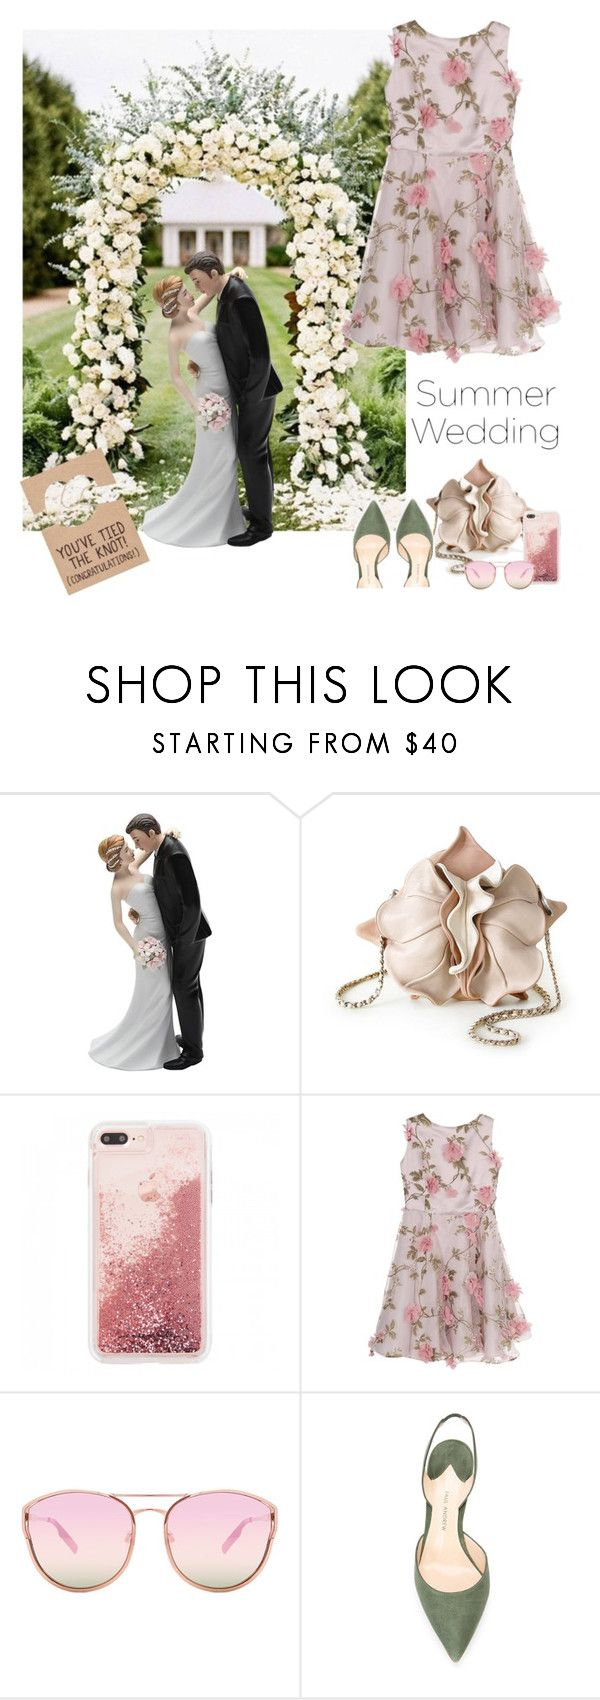 """Summer Wedding"" by petalp ❤ liked on Polyvore featuring Little Wardrobe London, Quay, Paul Andrew and wedding"